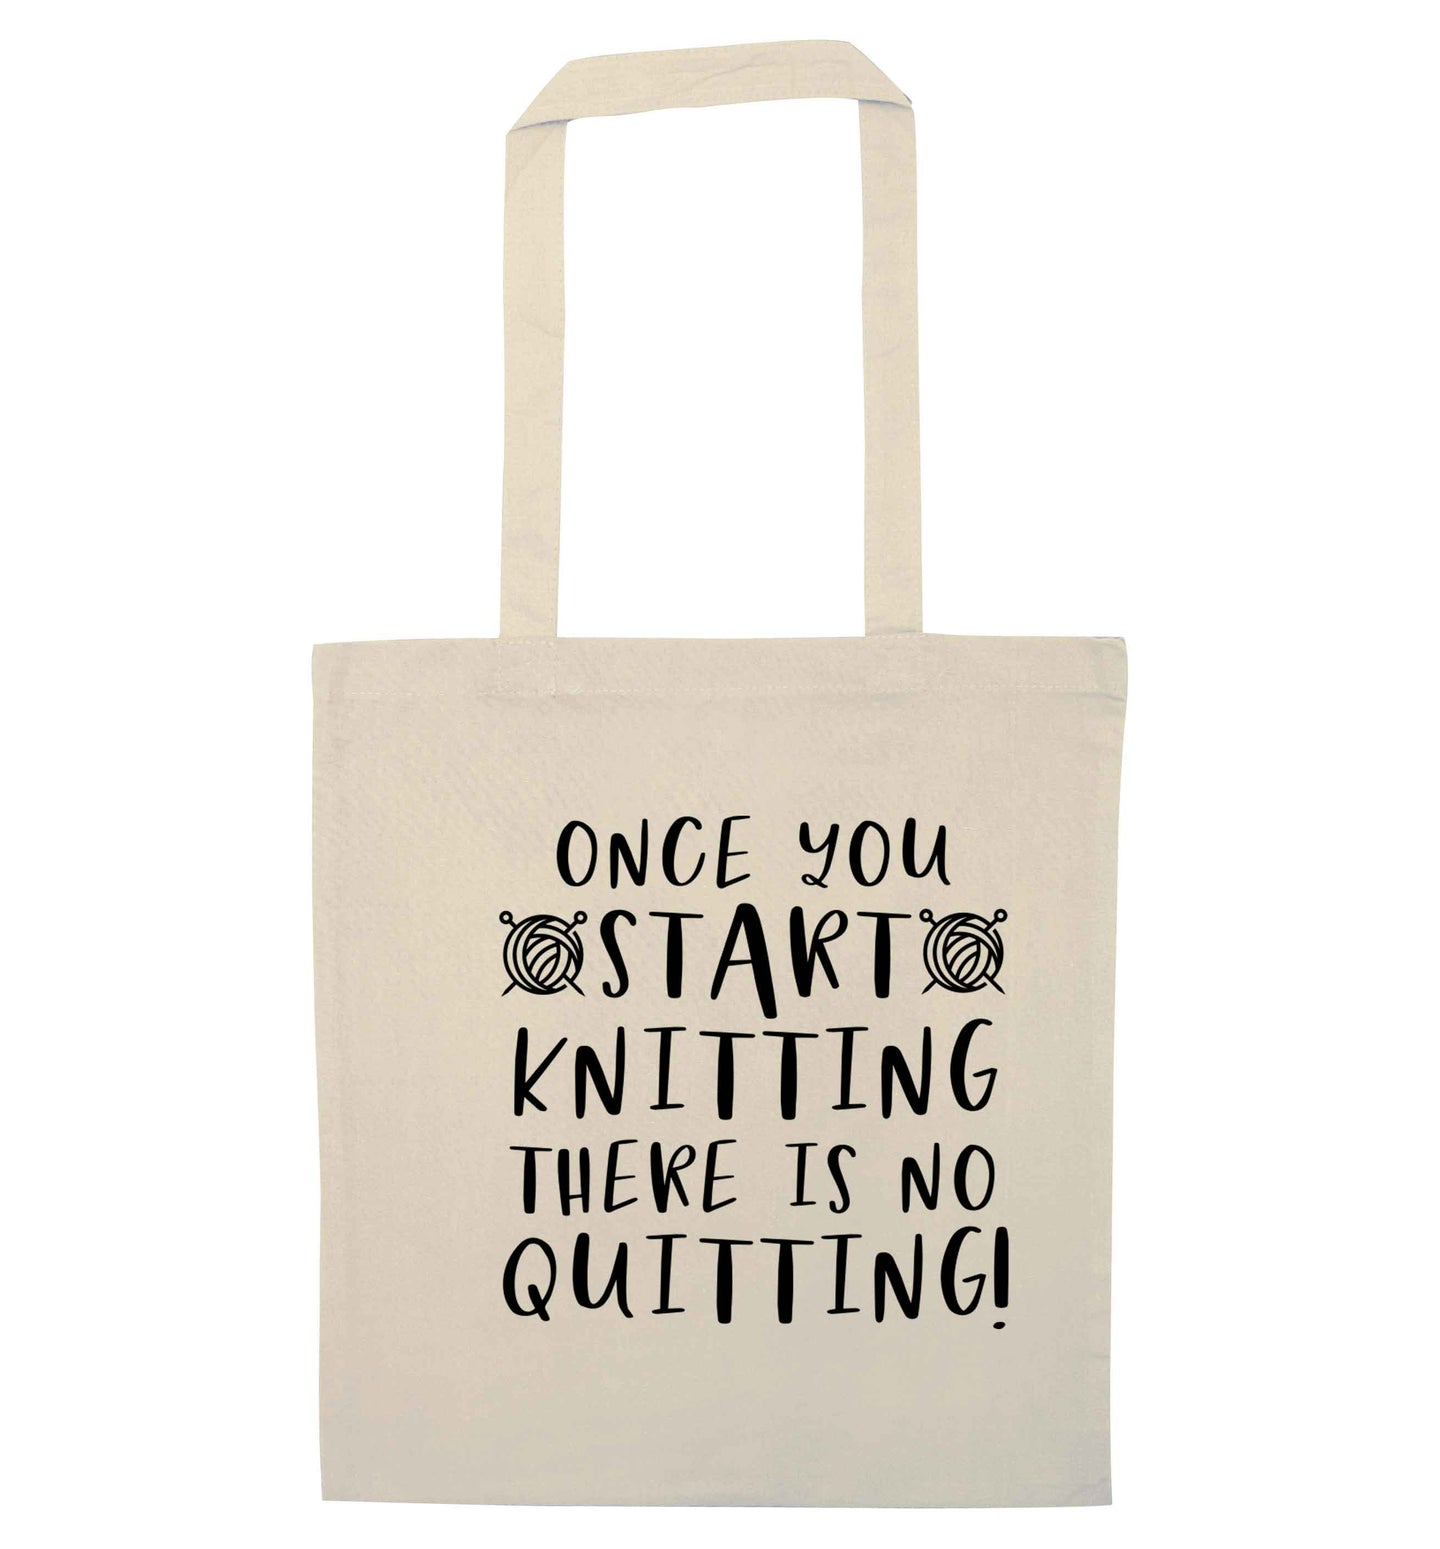 Once you start knitting there is no quitting! natural tote bag